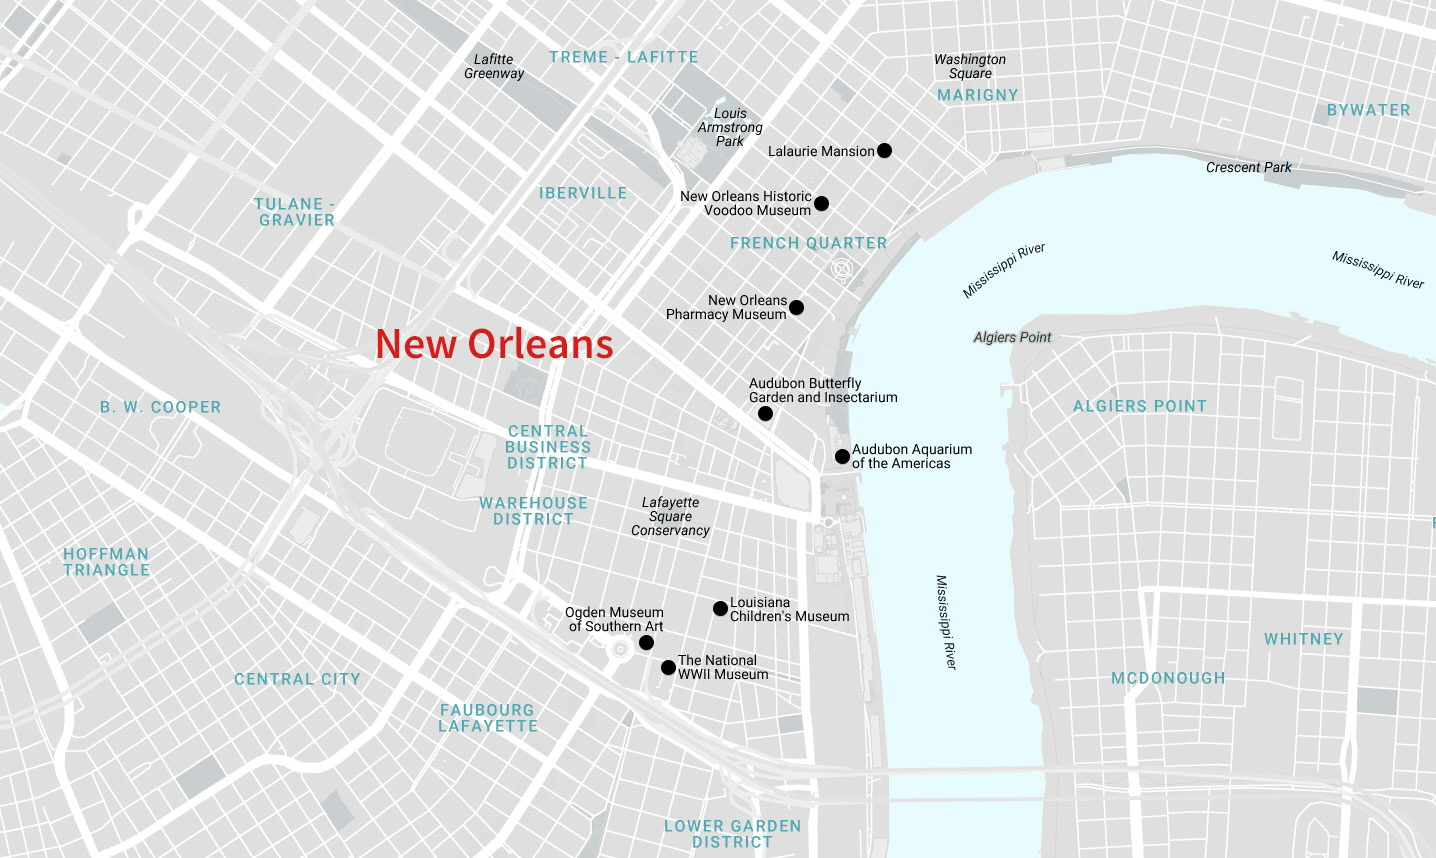 New Orleans Travel Guide on new orleans tour map, french quarter new orleans trolley, new orleans visitors map, new orleans road map, new orleans street map, french quarter map printable, disney port orleans resort french quarter map, french quarter streetcar map, new orleans louisiana map, french quarter street map, french quarter new orleans library, french quarter attractions map, french quarter new orleans history, french quarter walking map, french quarter new orleans tourism, old new orleans map, french quarter hotels map, la french quarter map, new orleans attractions map, nola french quarter map,